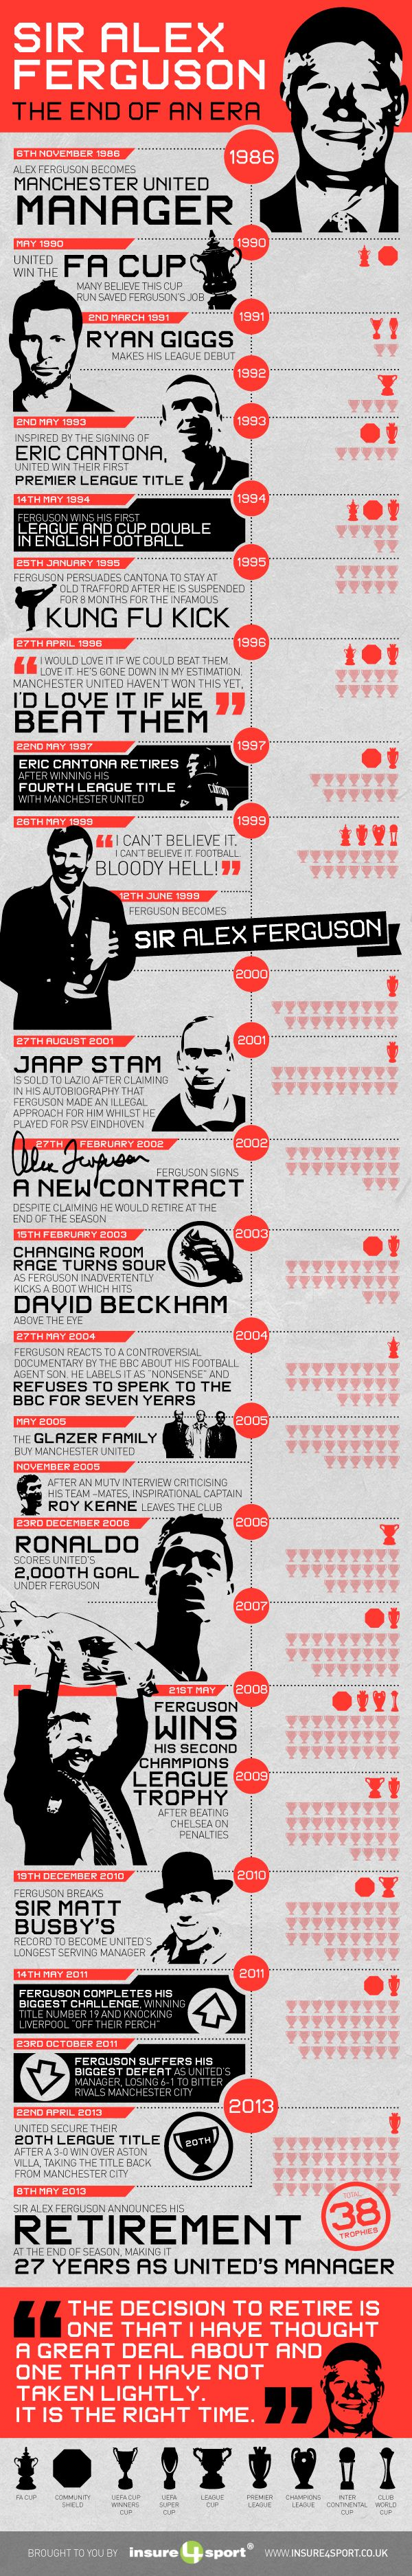 Our infographic tribute to Sir Alex Ferguson's amazing success at Manchester United - we chart the trophies and events through an amazing 27 year jour